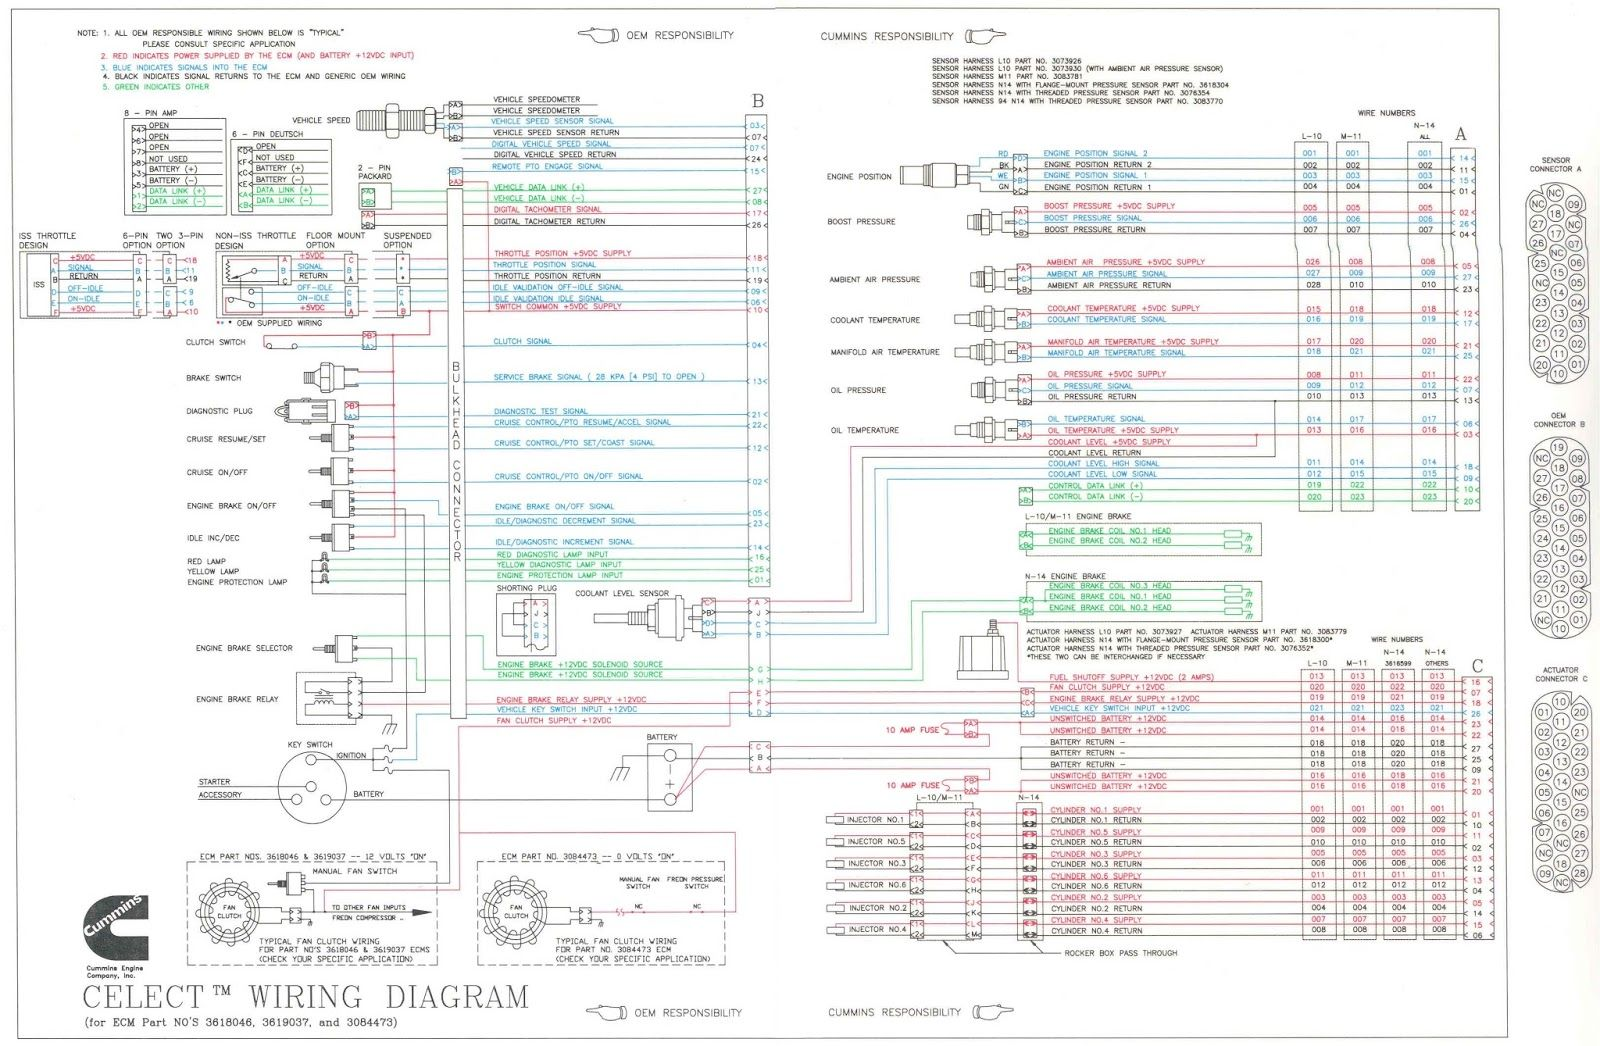 N14 Celect Ecm Wiring Diagram Nice Place To Get Cummins Engine Third Level Rh 12 17 Jacobwinterstein Com Plus Valve Adjustment